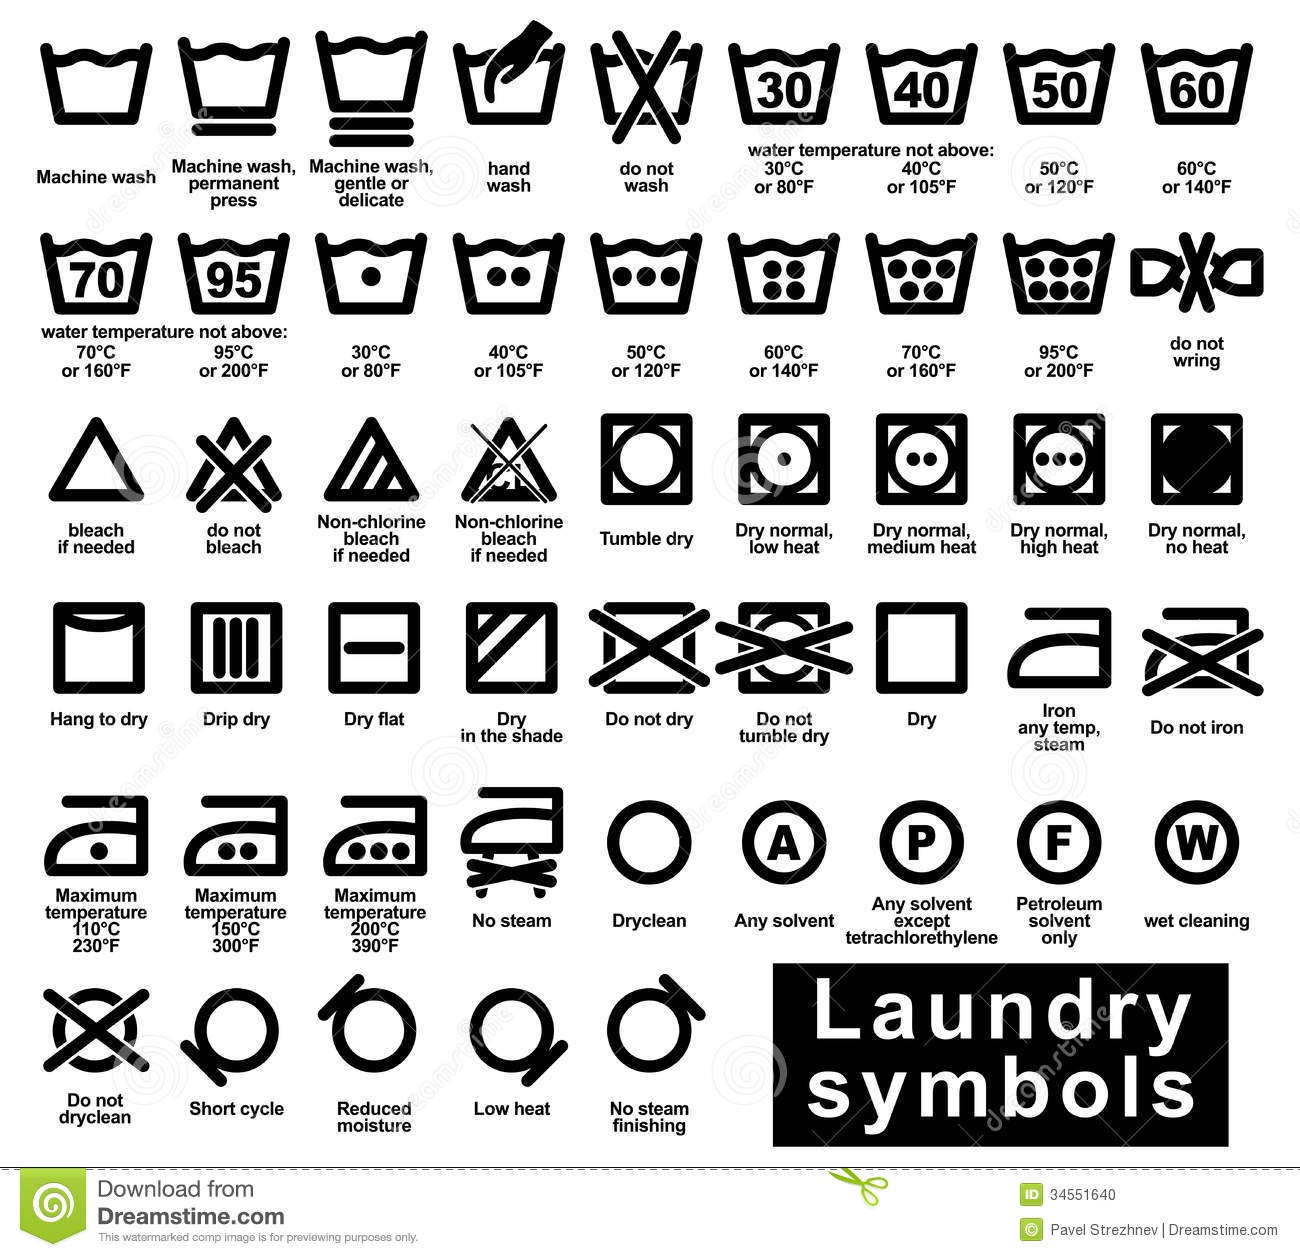 Always Deathly Hallows Harry Potter duvet Cover likewise Stock Illustration Motorcycle Engine Metal Wings Vector Tailpipe Illustration White Background Image43522257 additionally Care besides Product Hydraulics YESYEN additionally Laundry Cheat Sheet Decoding Care Symbols. on machine cycle symbol